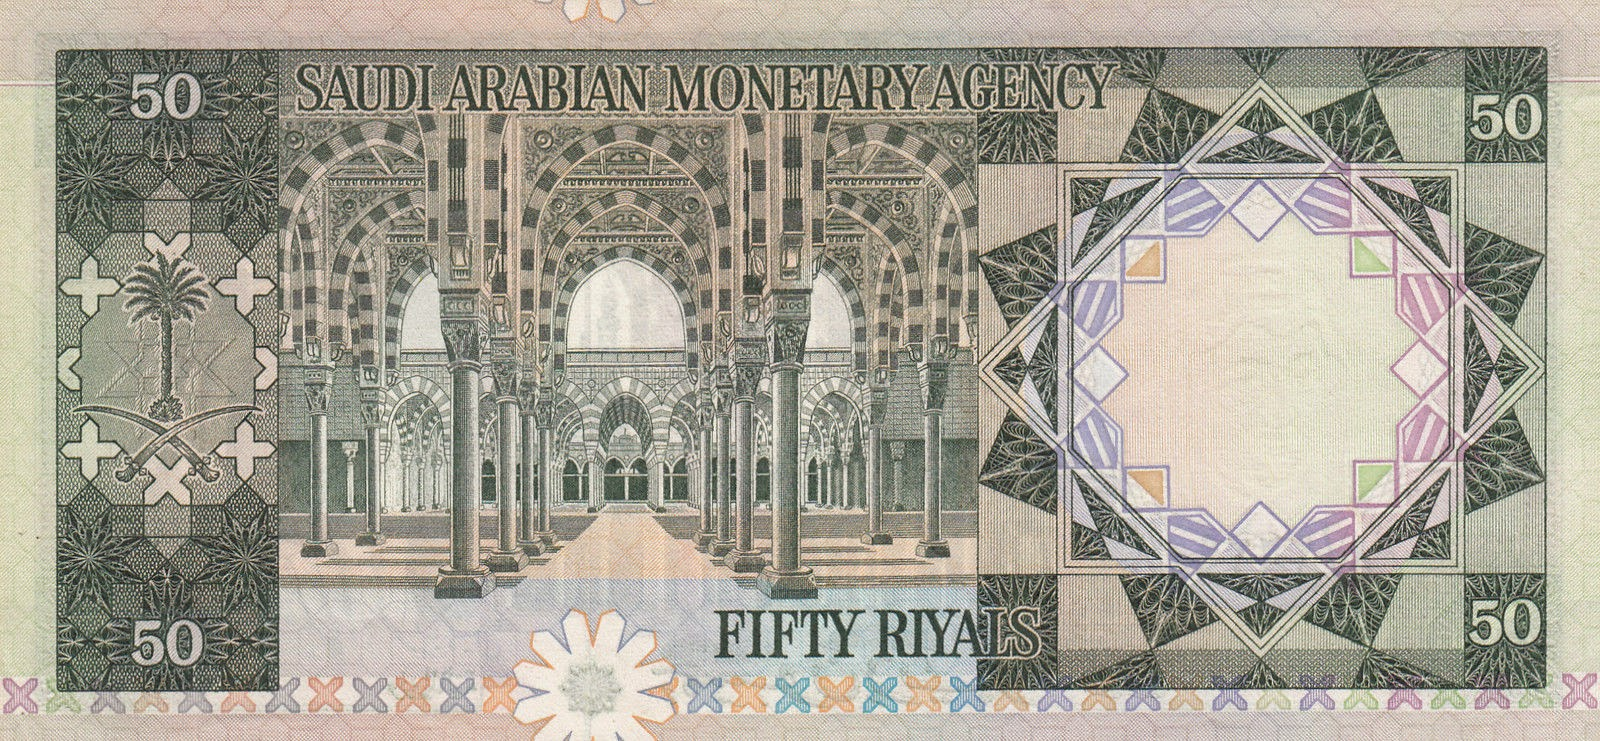 Saudi Arabia money currency 50 Riyal note 1976